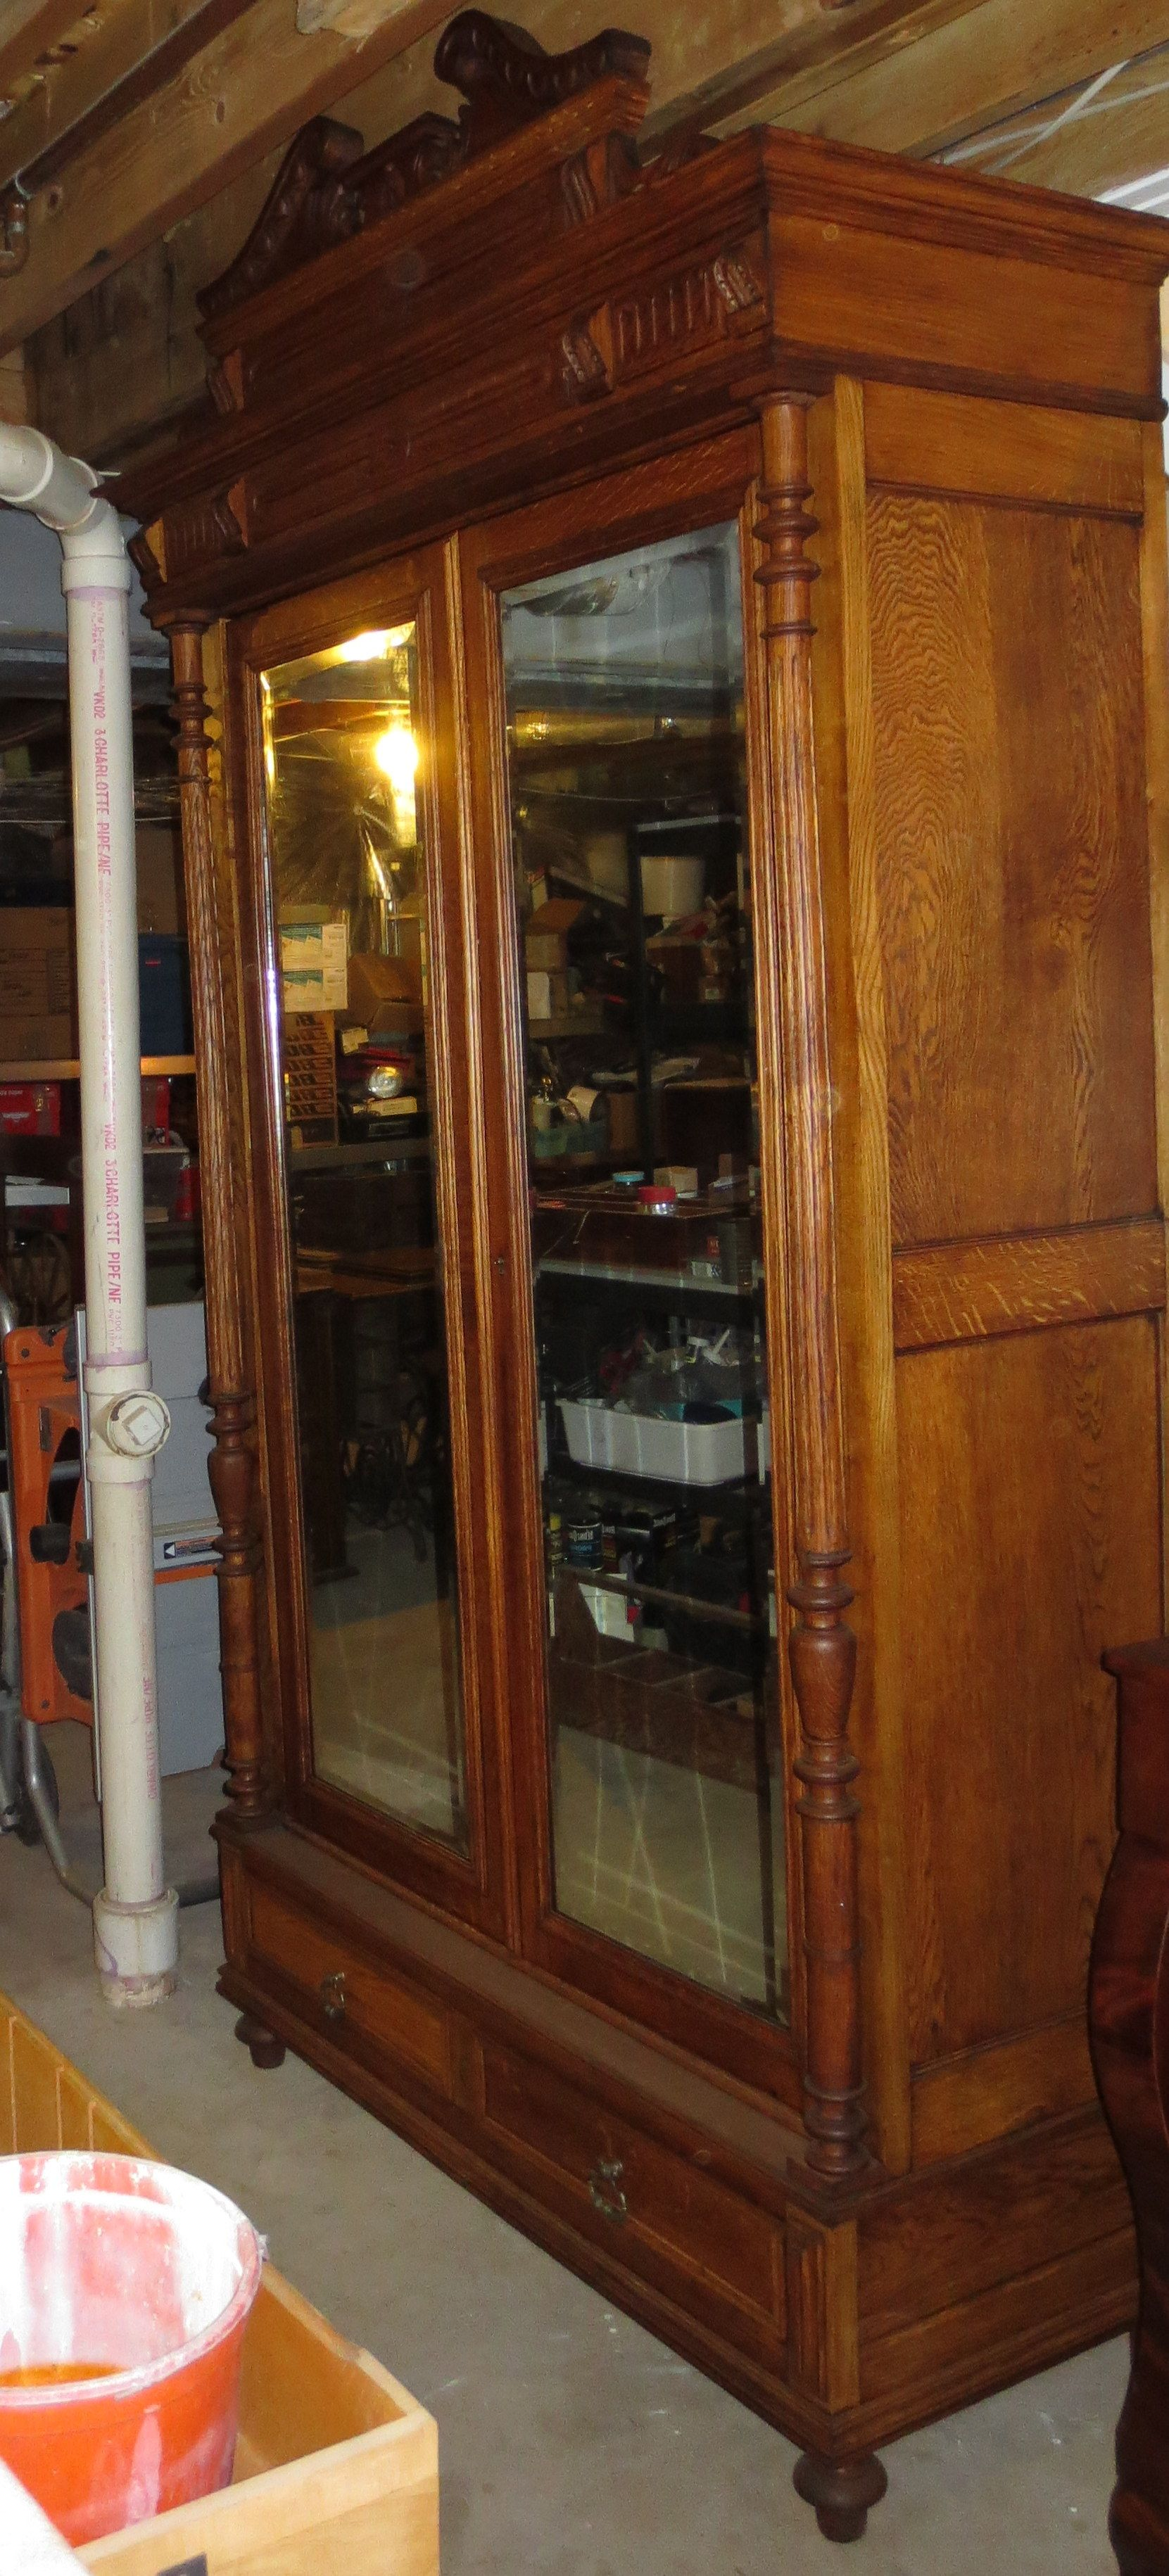 Early 1900s Belgium Oak Armoire With Original Glass Mirrors After Restoration Antique Furniture Restoration Furniture Restoration Projects Furniture Projects